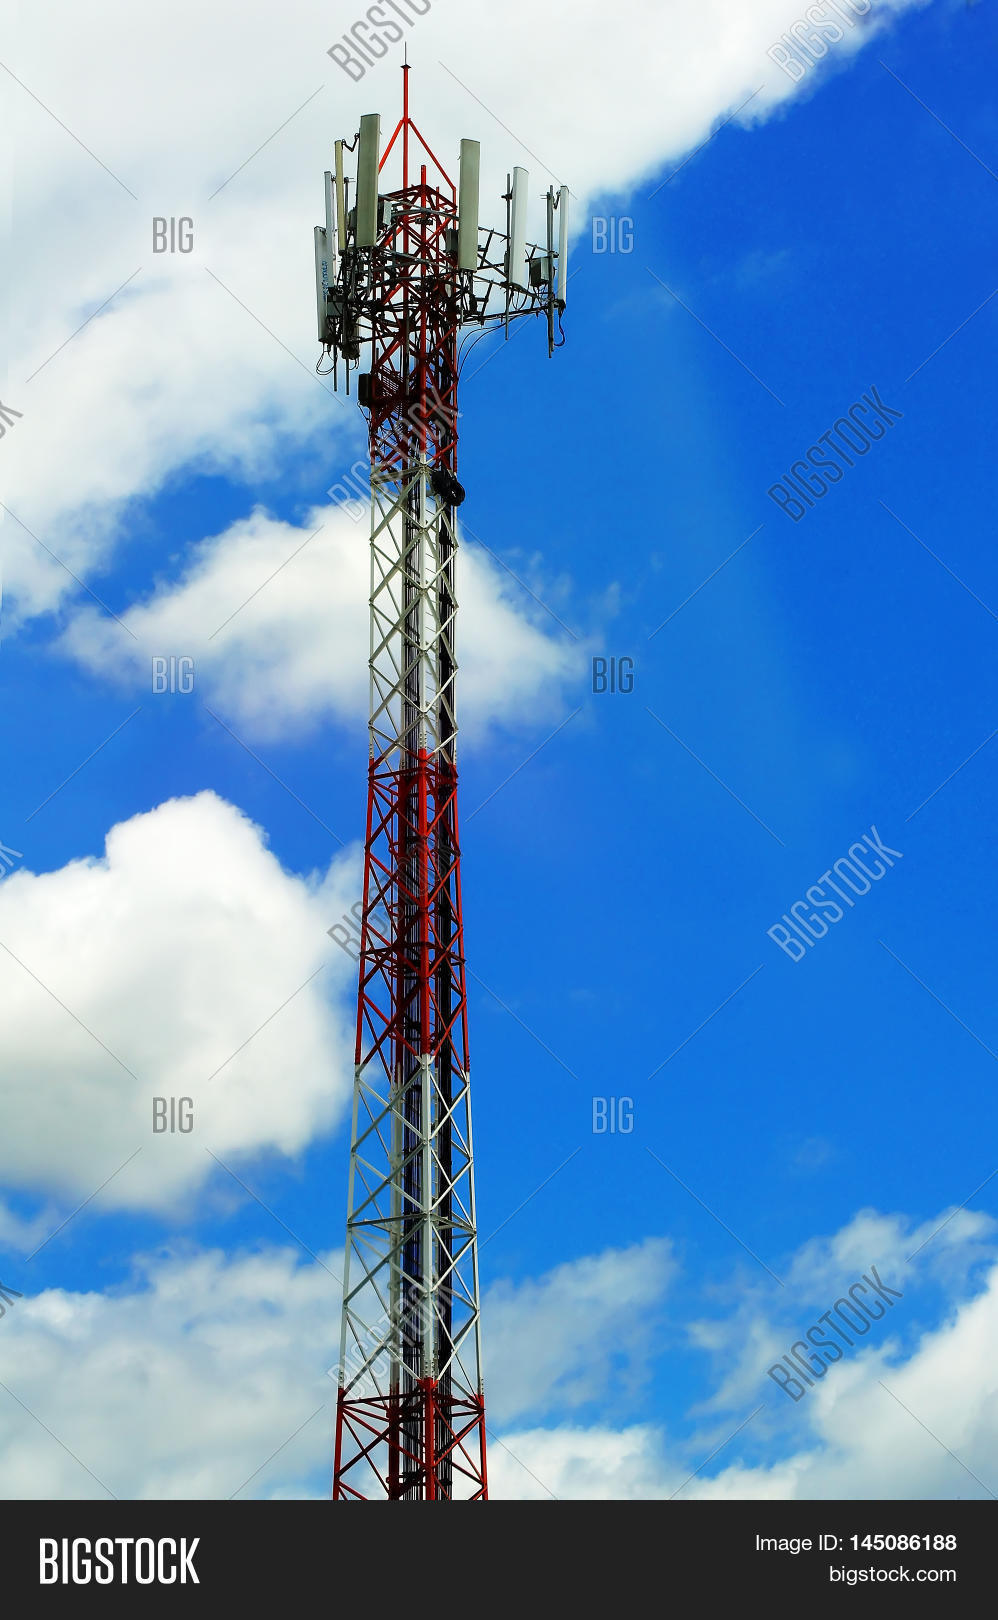 Pole Telephone Image Photo Free Trial Bigstock Transmitter The Background Sky And Clouds Are Very Beautiful